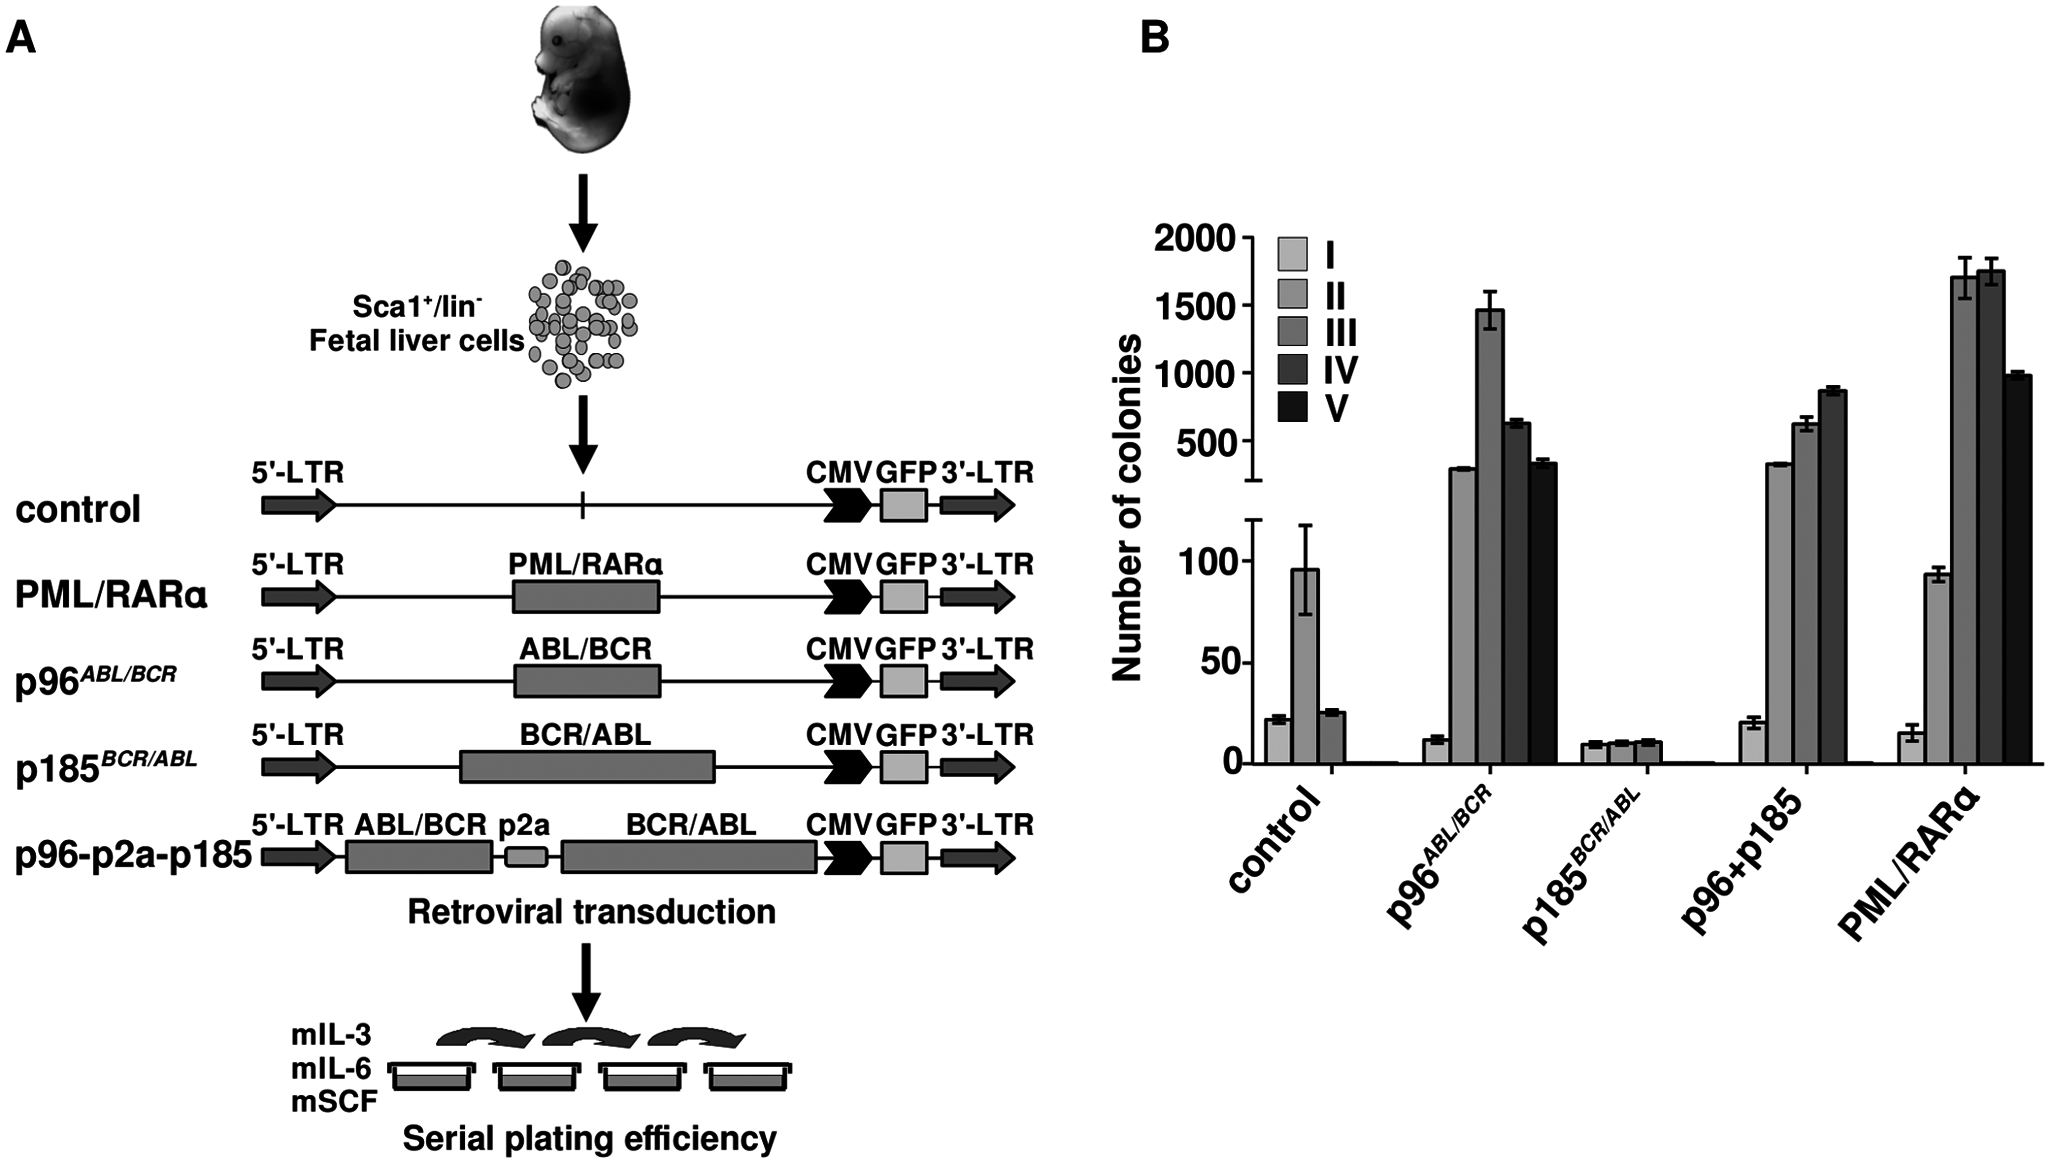 Effect of the t(9;22) fusion proteins the serial replating potential of murine fetal liver HSCs.